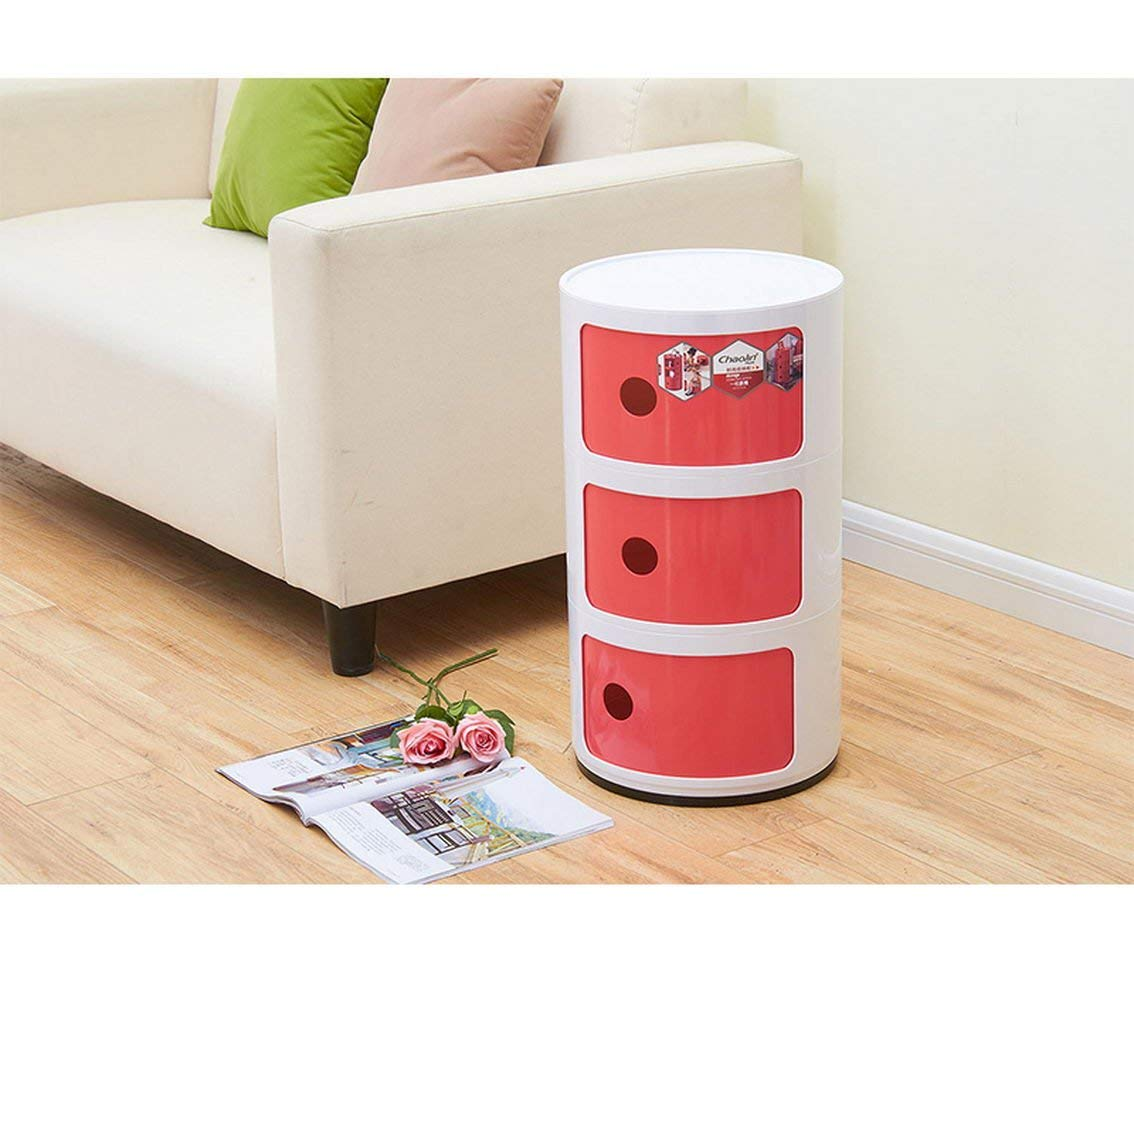 jii2030shann Mini bedside cabinets plastic round storage cabinets bedroom corners cabinets simple and modern multi-functional storage cabinet bedside cabinet corner cabinet minimalist modern nightsta